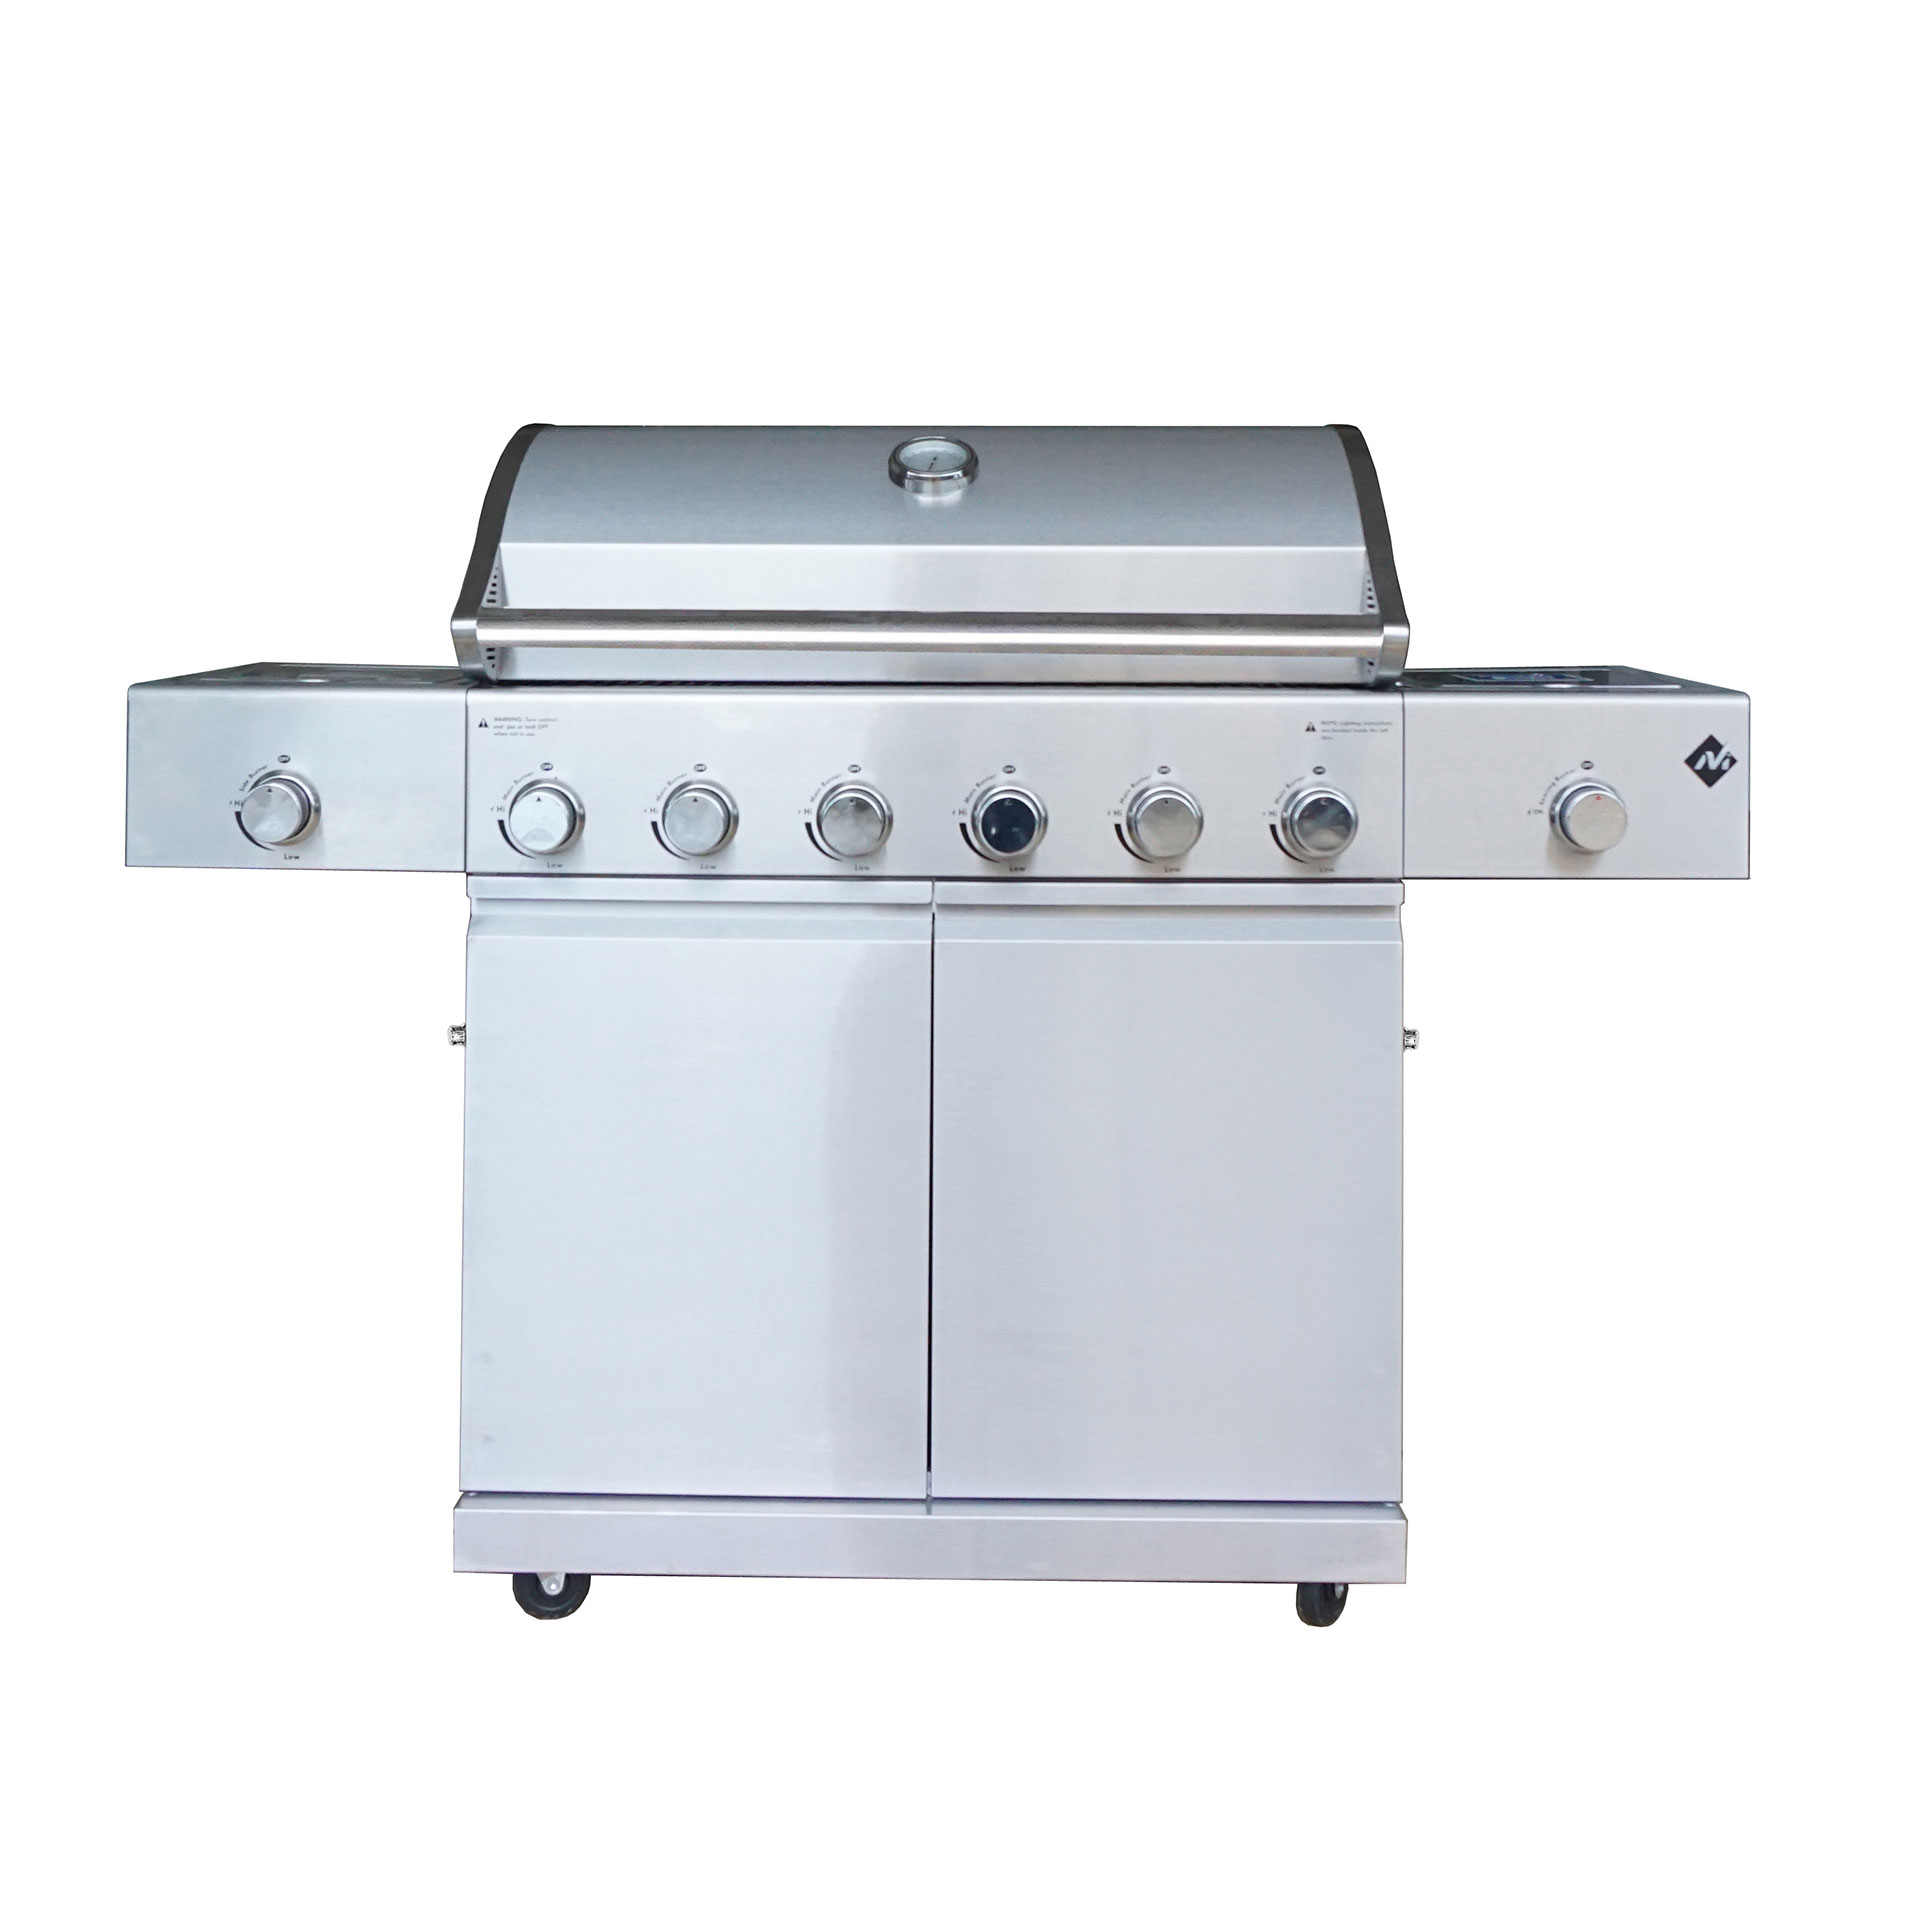 PG-40606SOLA – Permasteel – Global Manufacturer of BBQ Grills, Patio ...